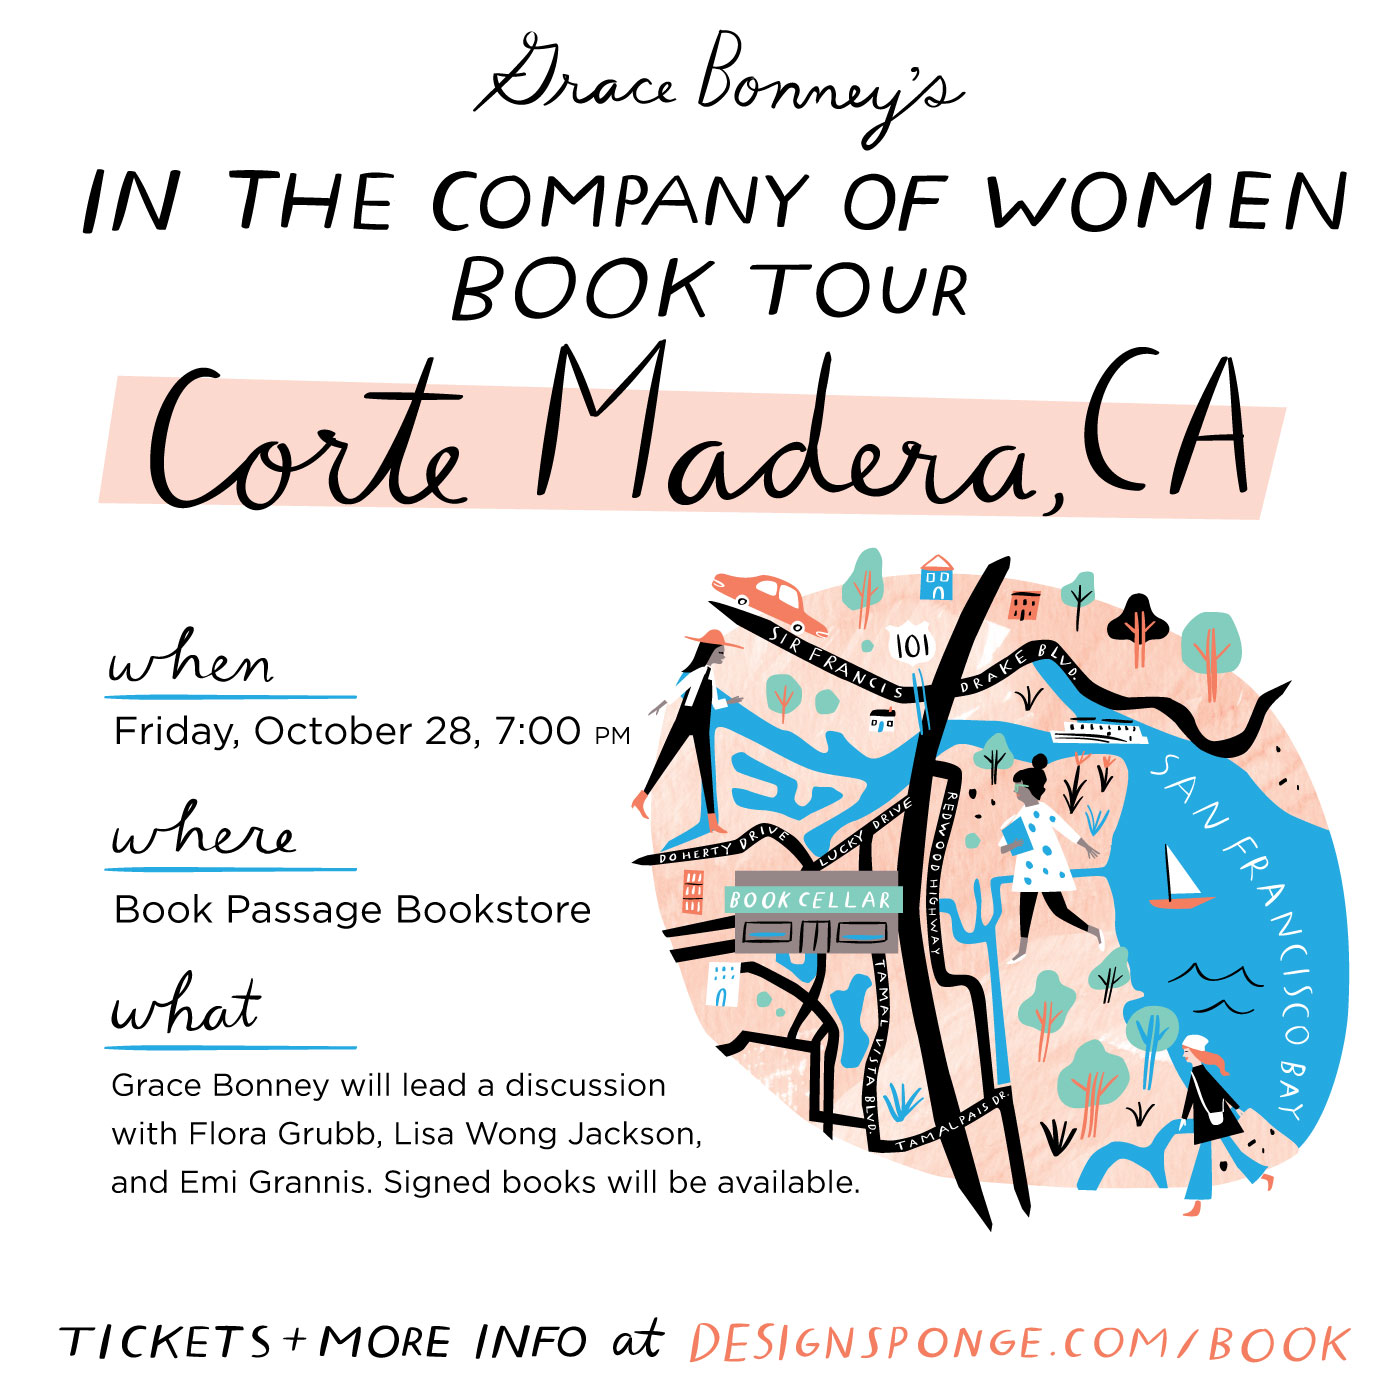 In the Company of Women Book Tour: Corte Madera, CA  /  www.goodonpaperdesign.com/blog/2016/9/18/in-the-company-of-women-book-tour-corte-madera-ca  /  @good_on_paper